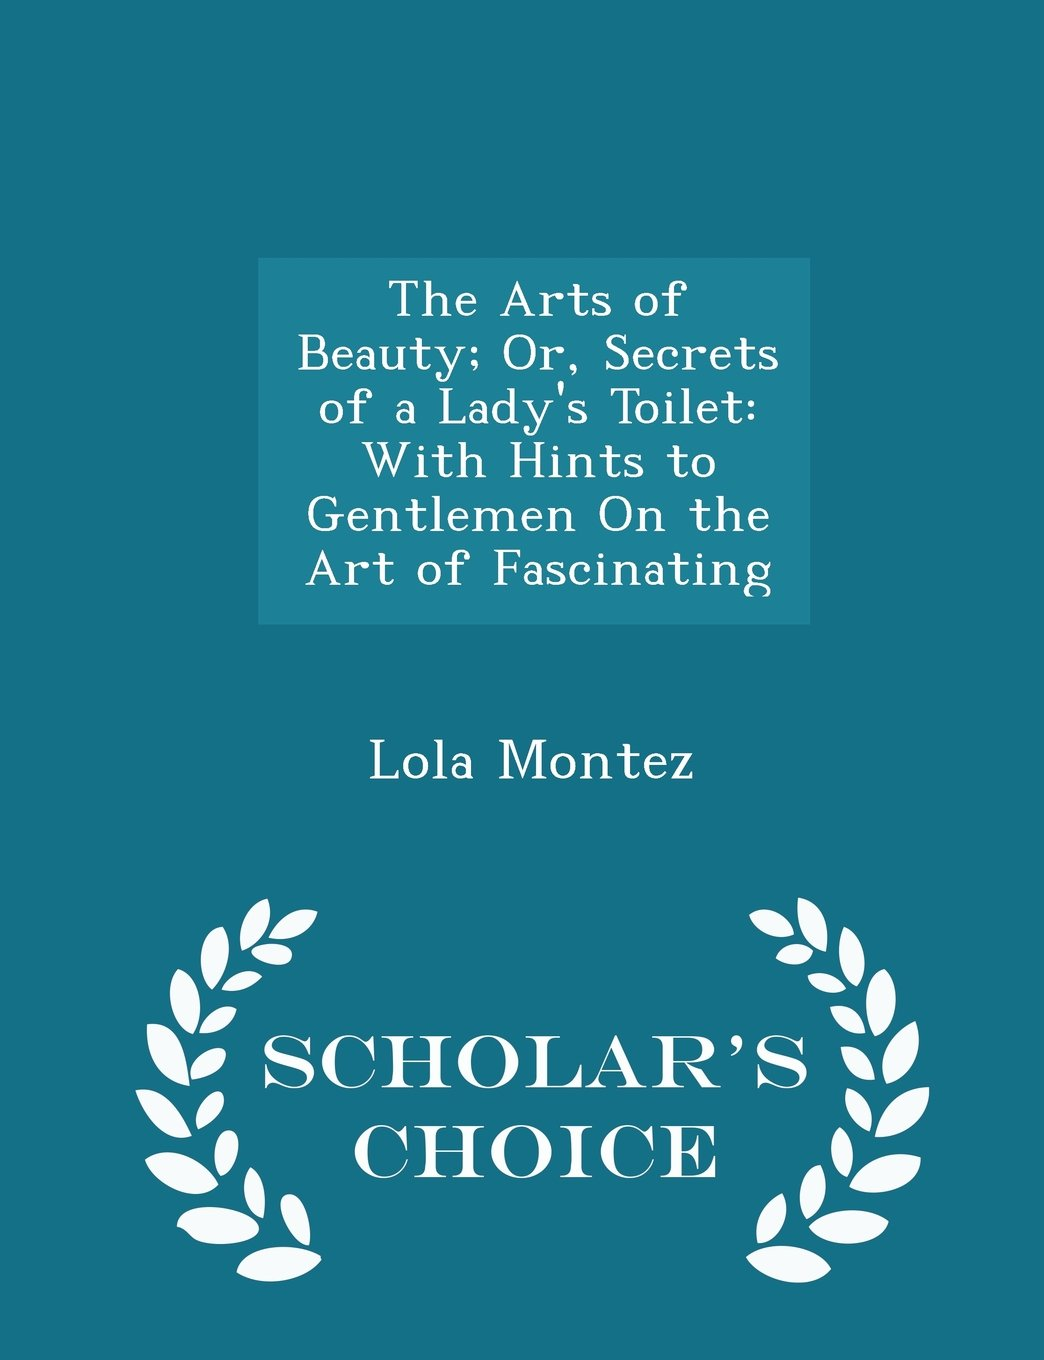 Download The Arts of Beauty; Or, Secrets of a Lady's Toilet: With Hints to Gentlemen On the Art of Fascinating - Scholar's Choice Edition pdf epub